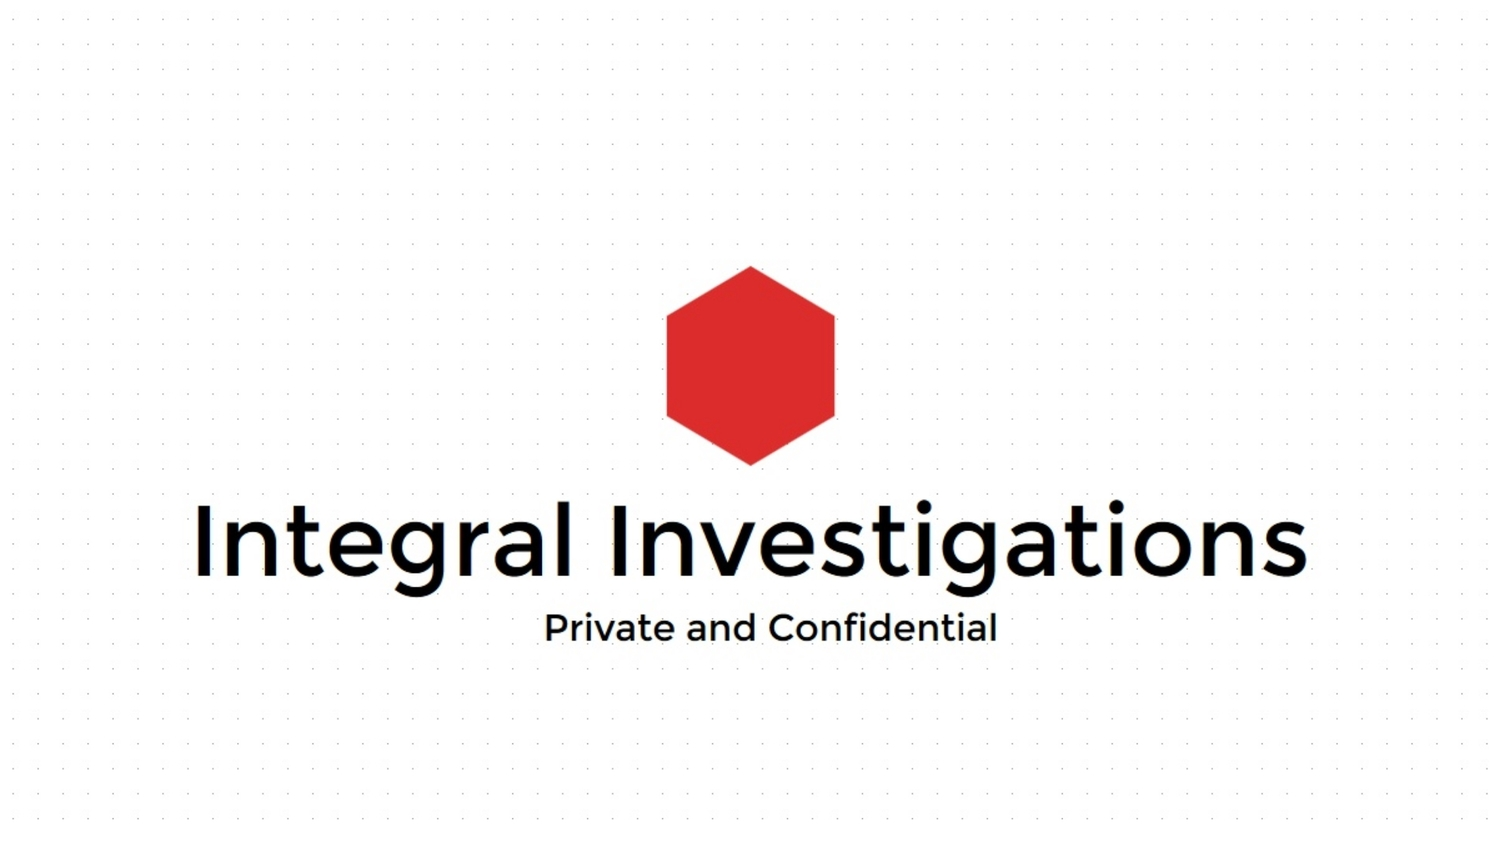 Integral Investigations